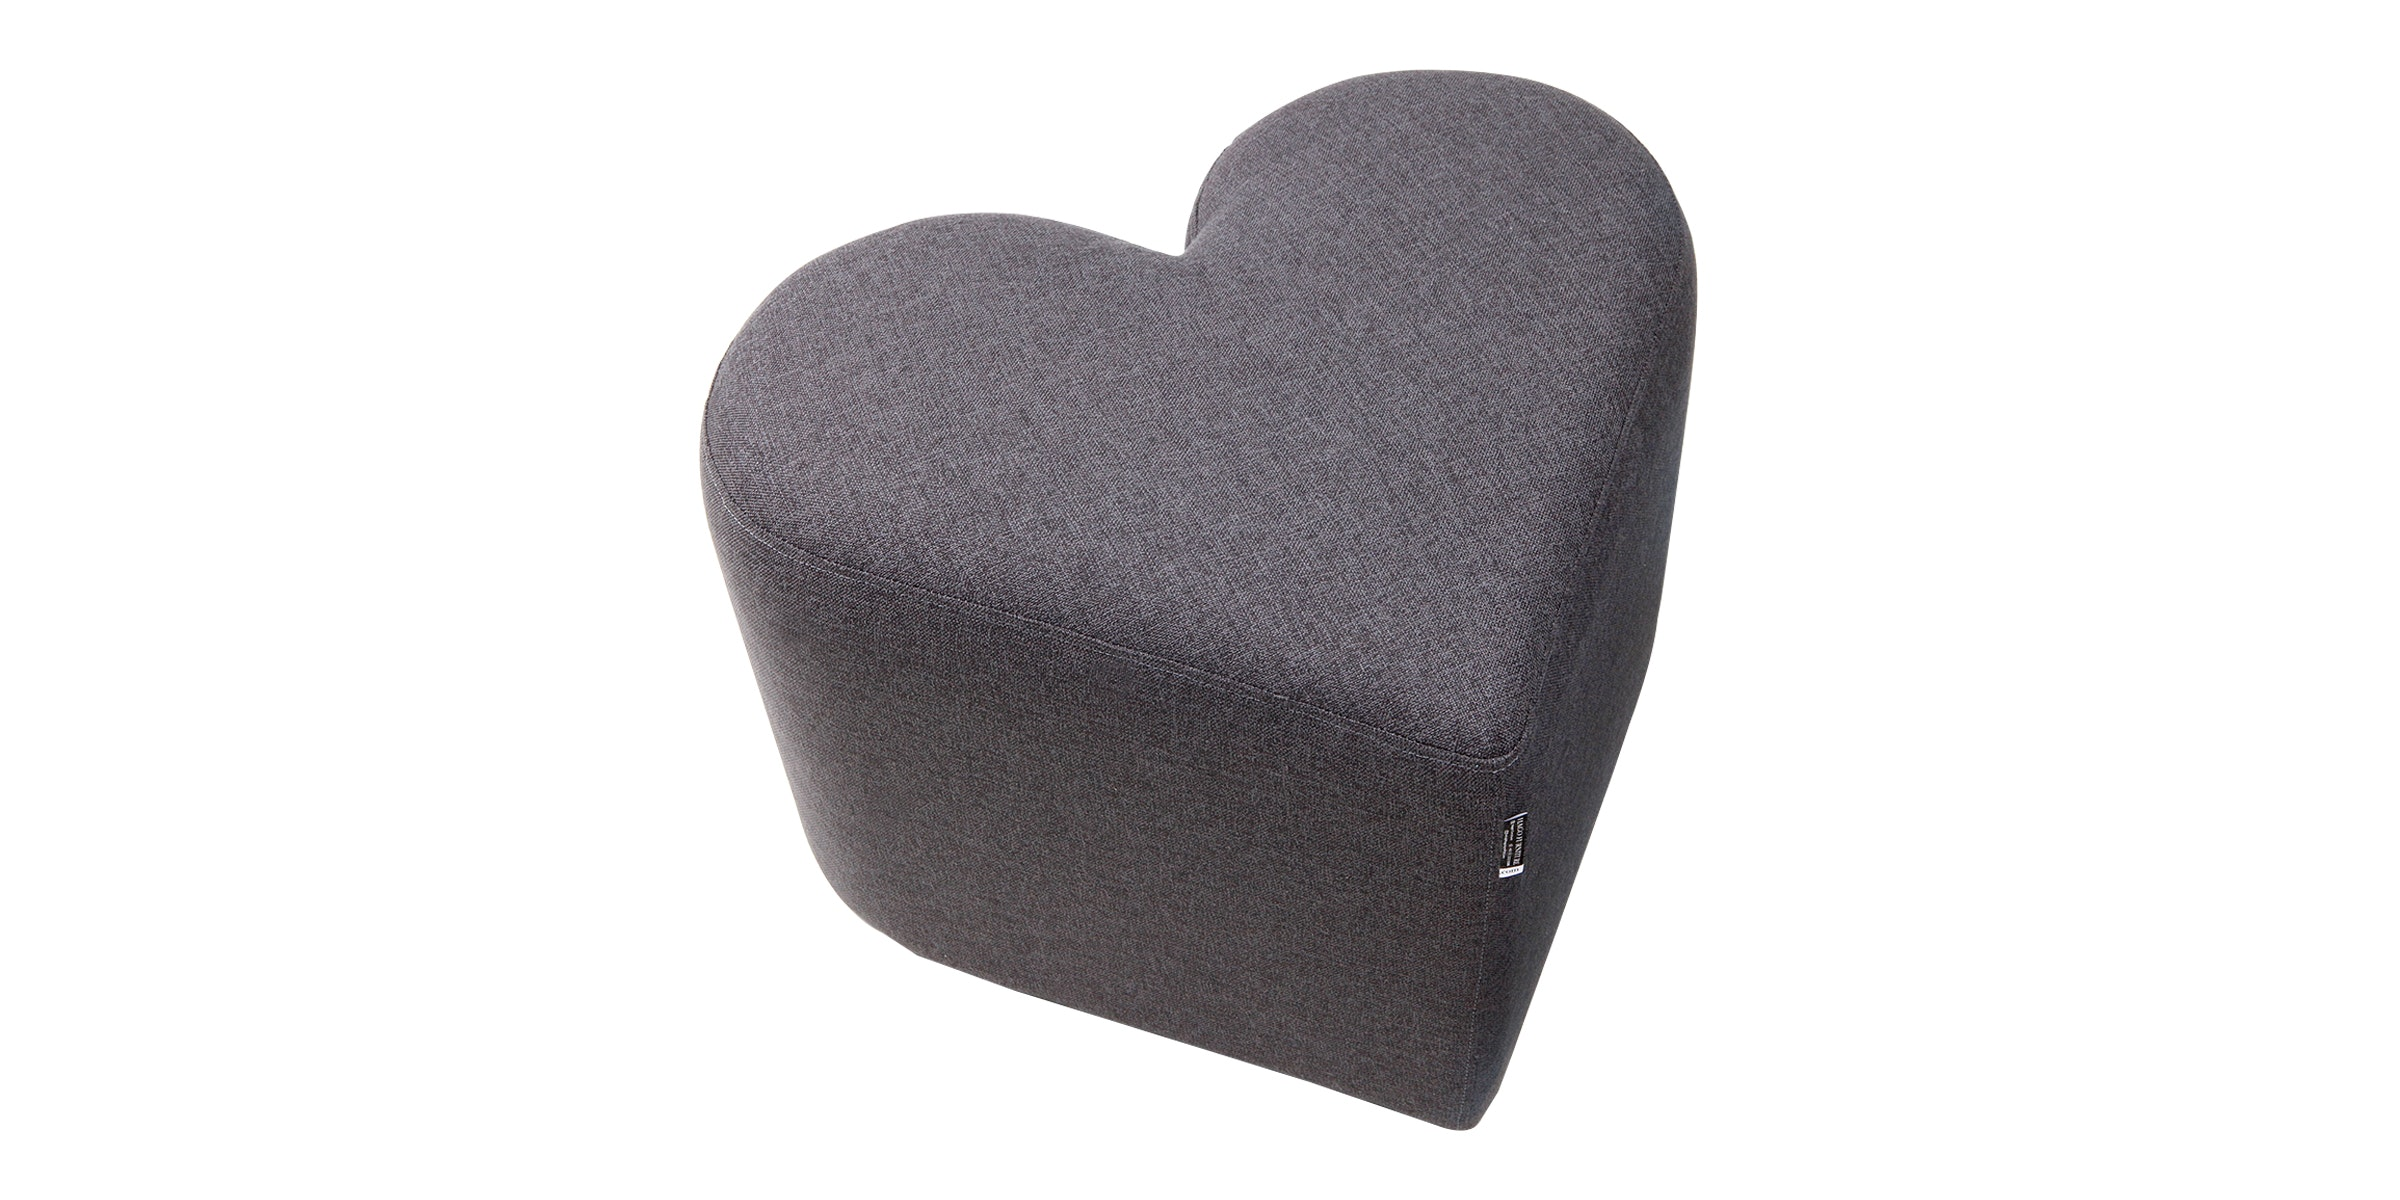 Hago Furniture Heart Unique Ottoman Abu